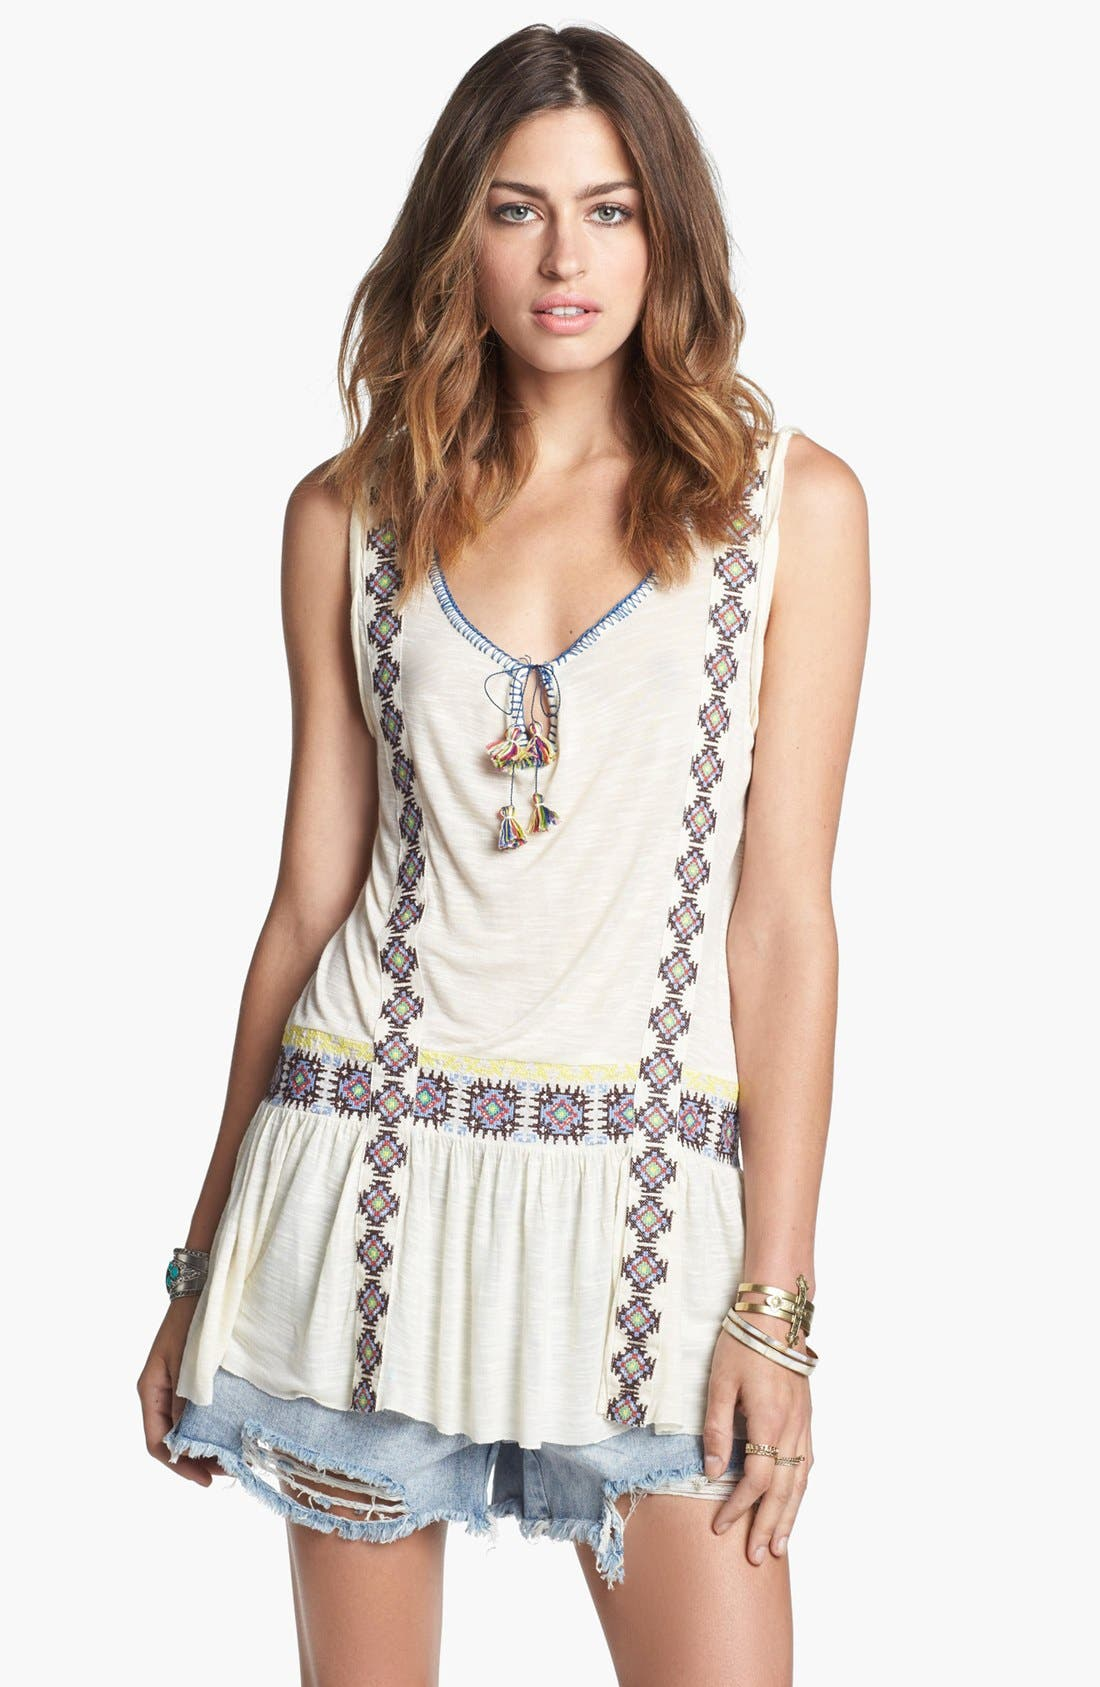 Alternate Image 1 Selected - Free People 'Moonlight Mile' Embroidered Tank